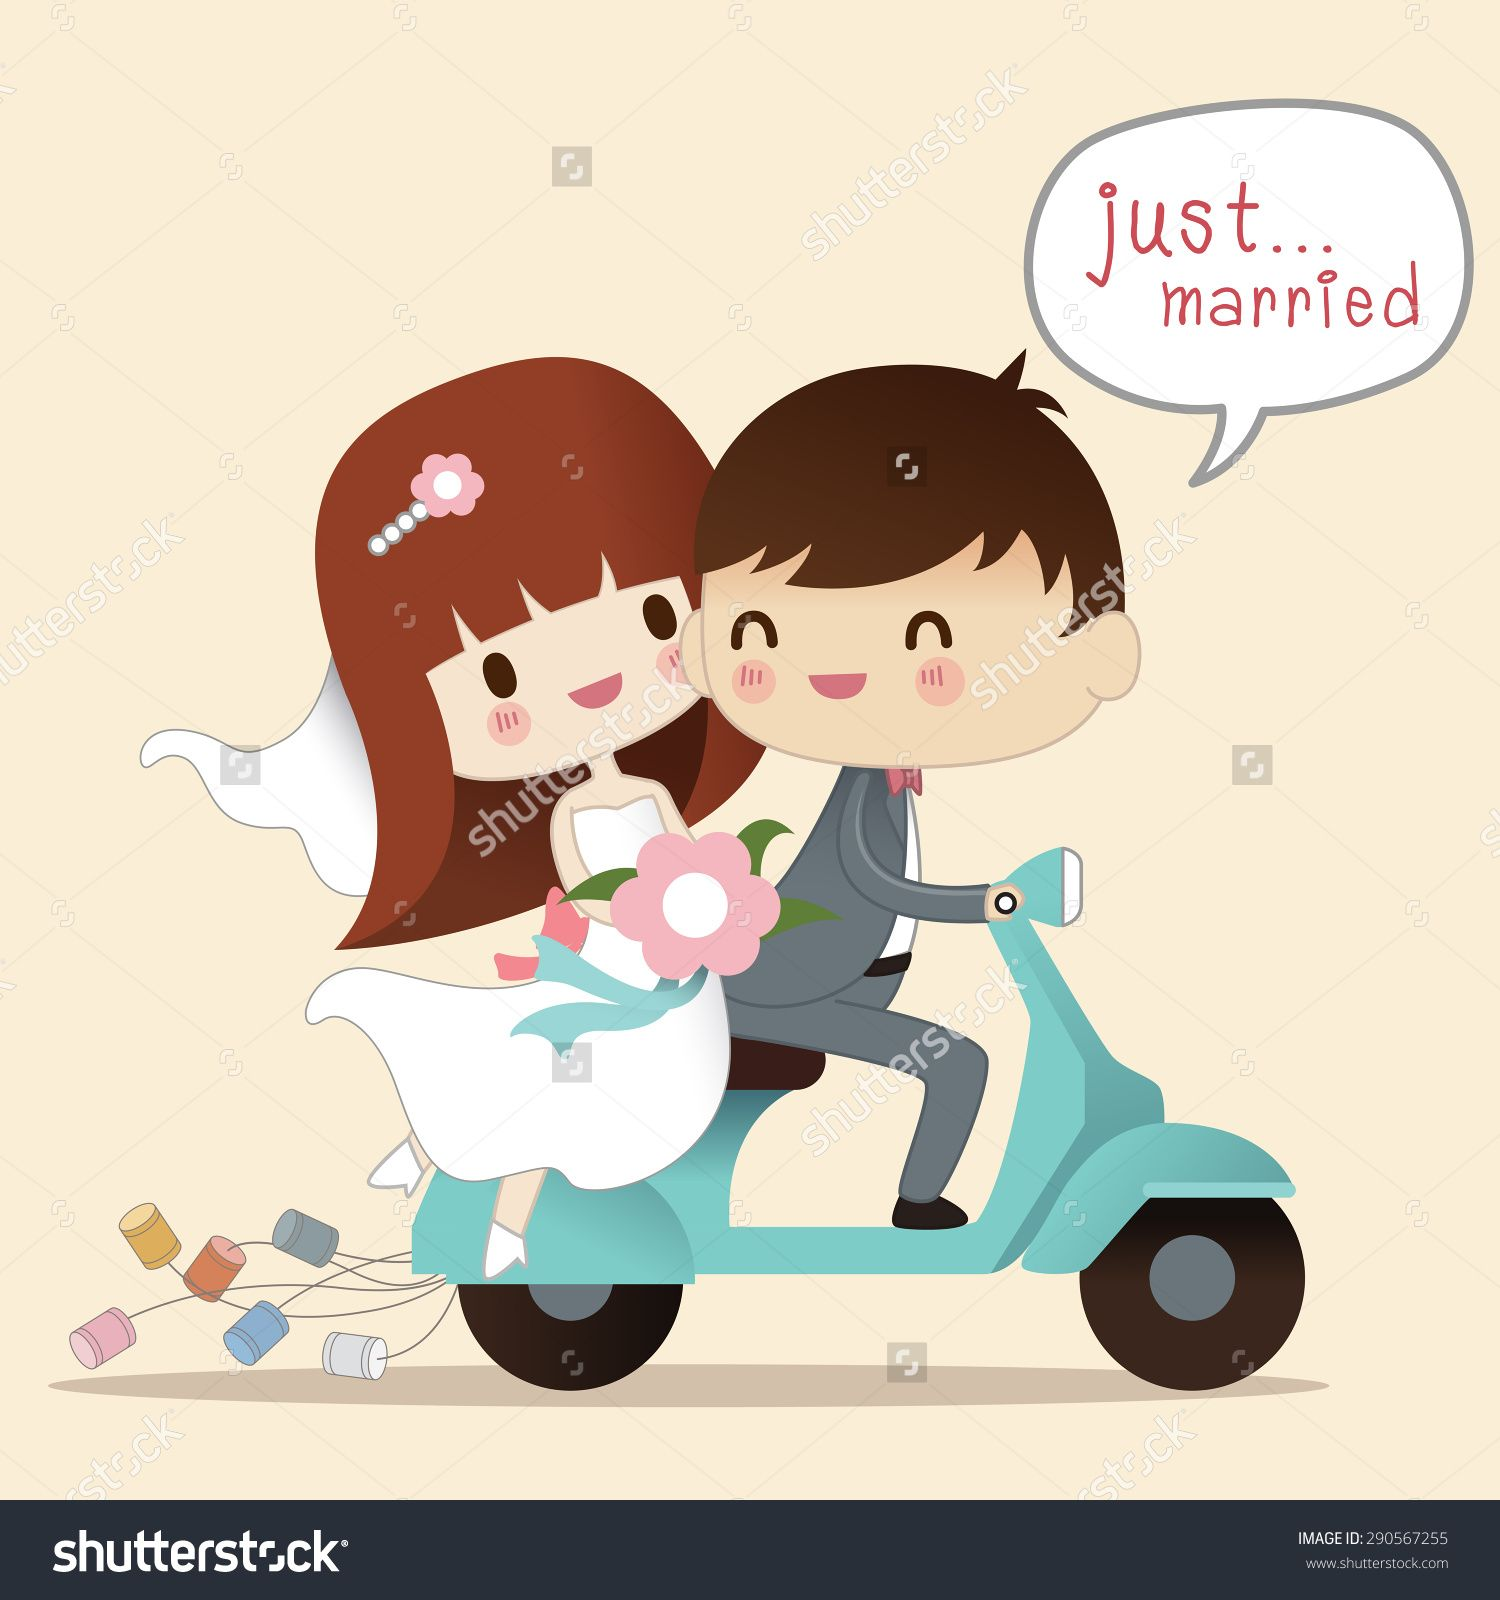 ecab00635db9 Wedding Illustration. Just Married. Groom And Bride On The Motorcycle  ,Vector Illustration - 290567255 : Shutterstock